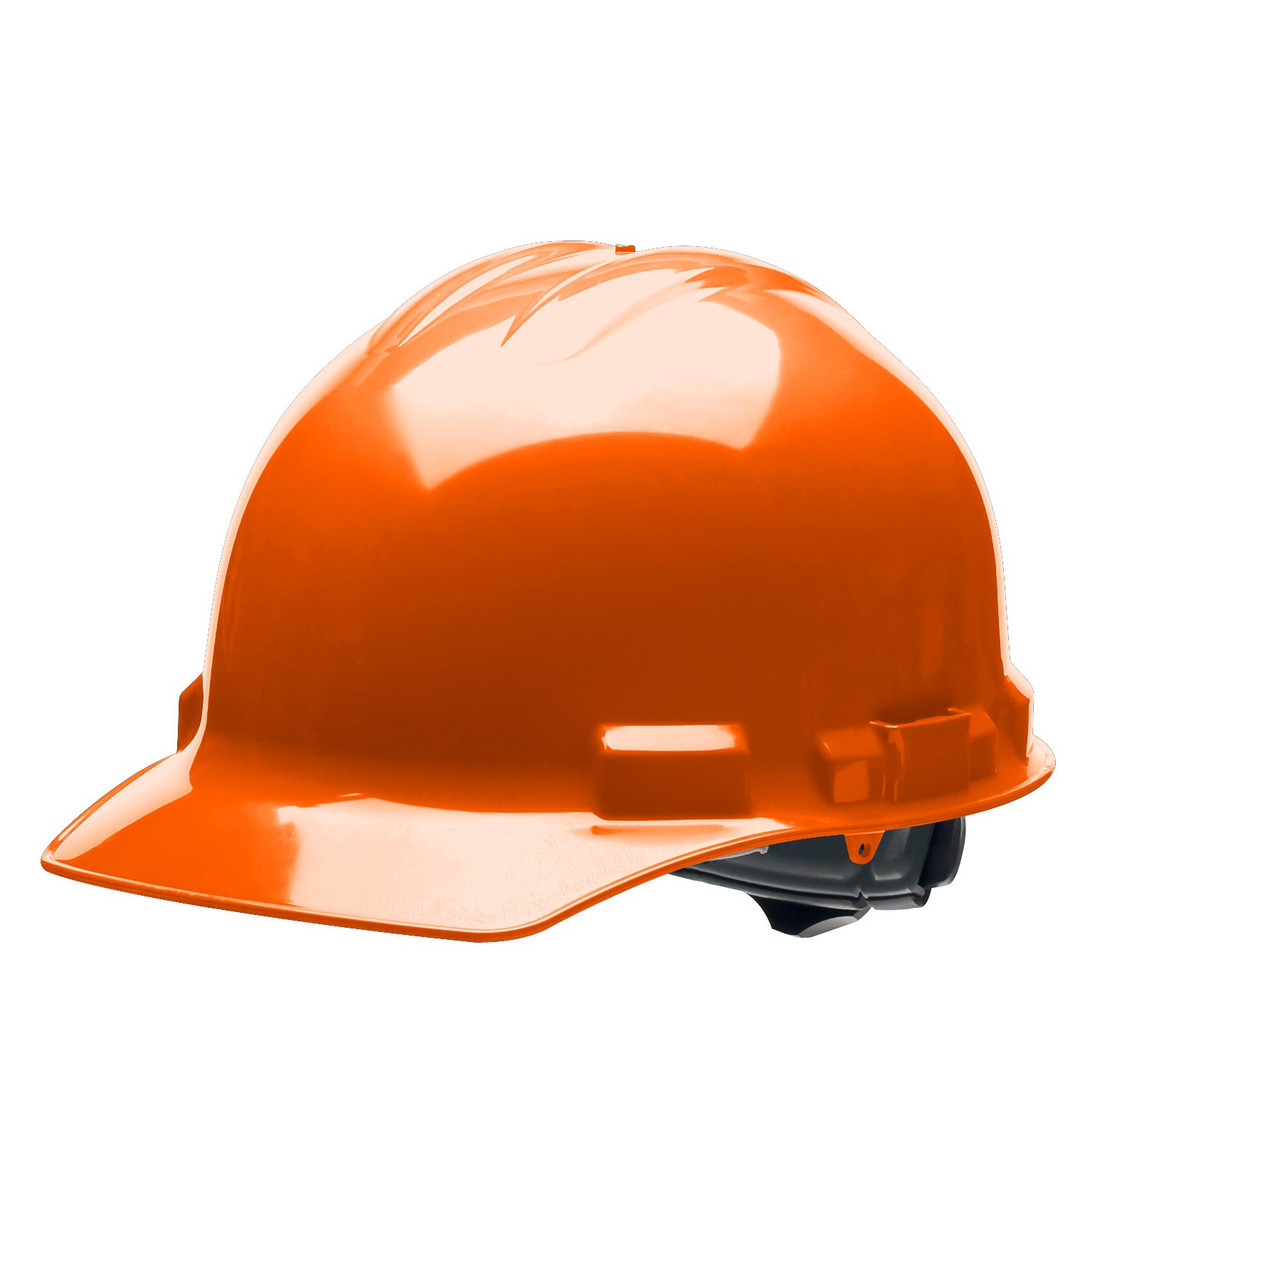 HiVis Orange Hard Hat Helmet Style Made in the USA